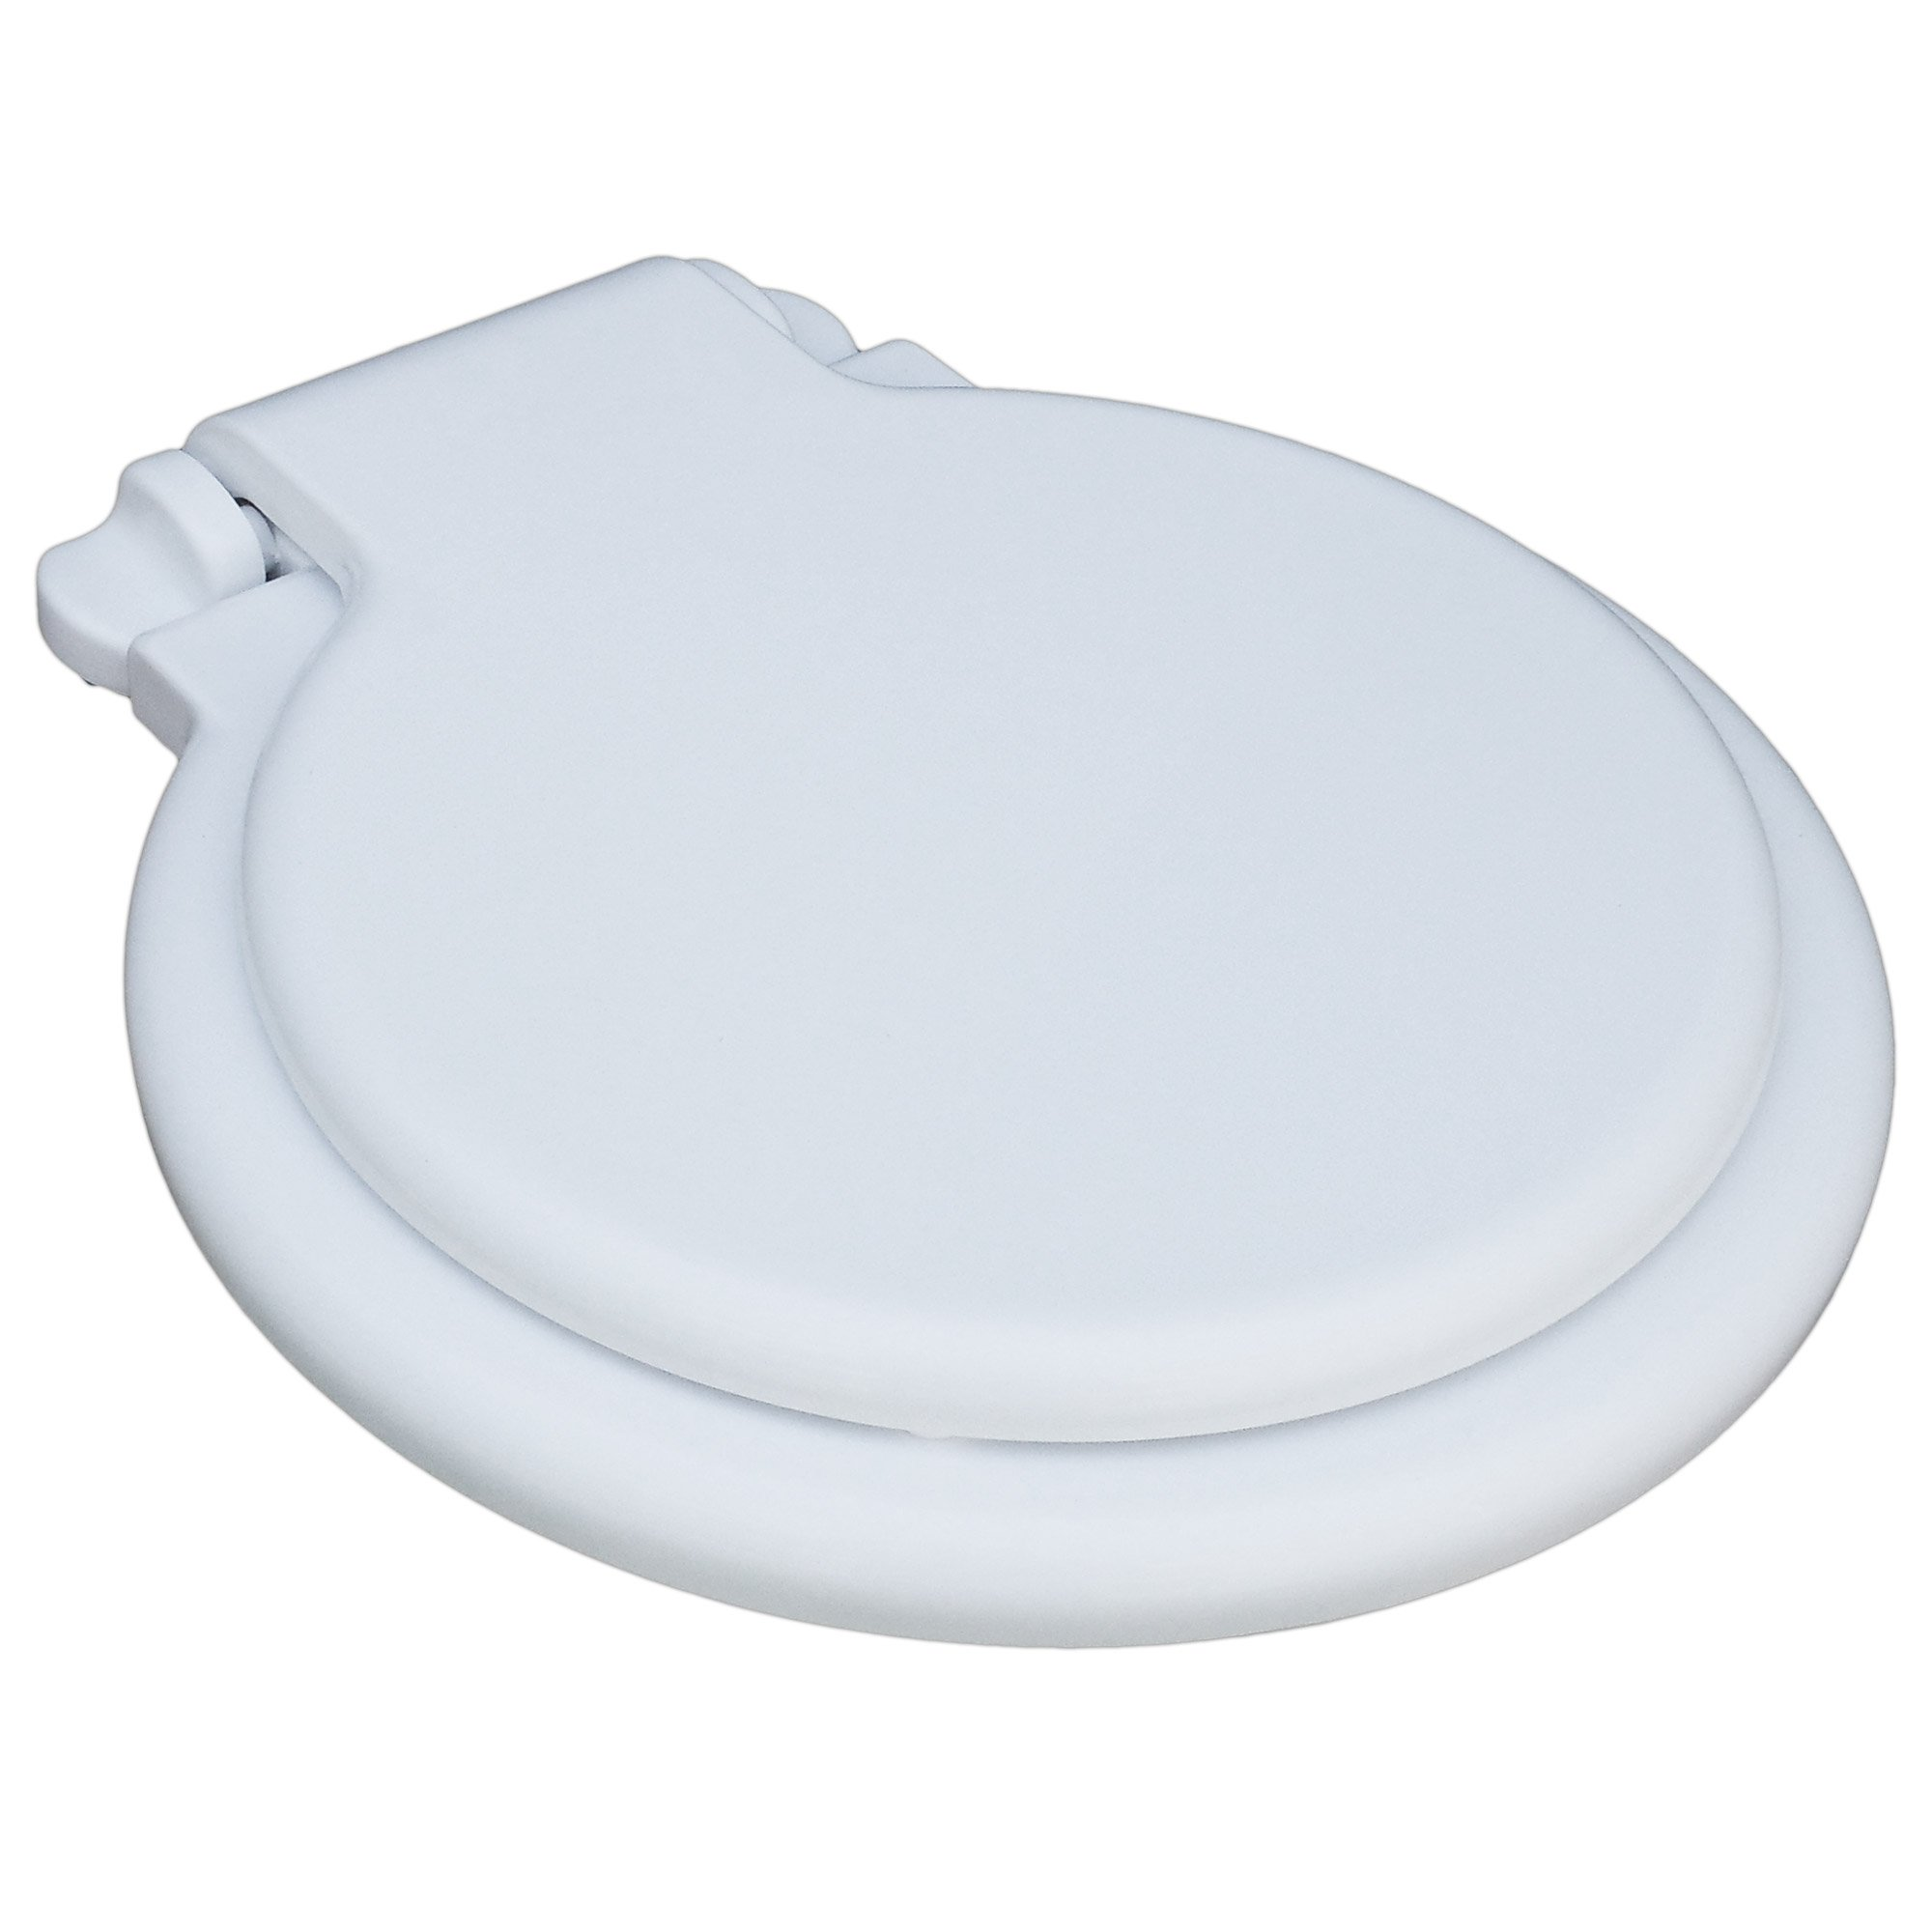 Five Oceans Toilet Seat & Cover - BC 1398